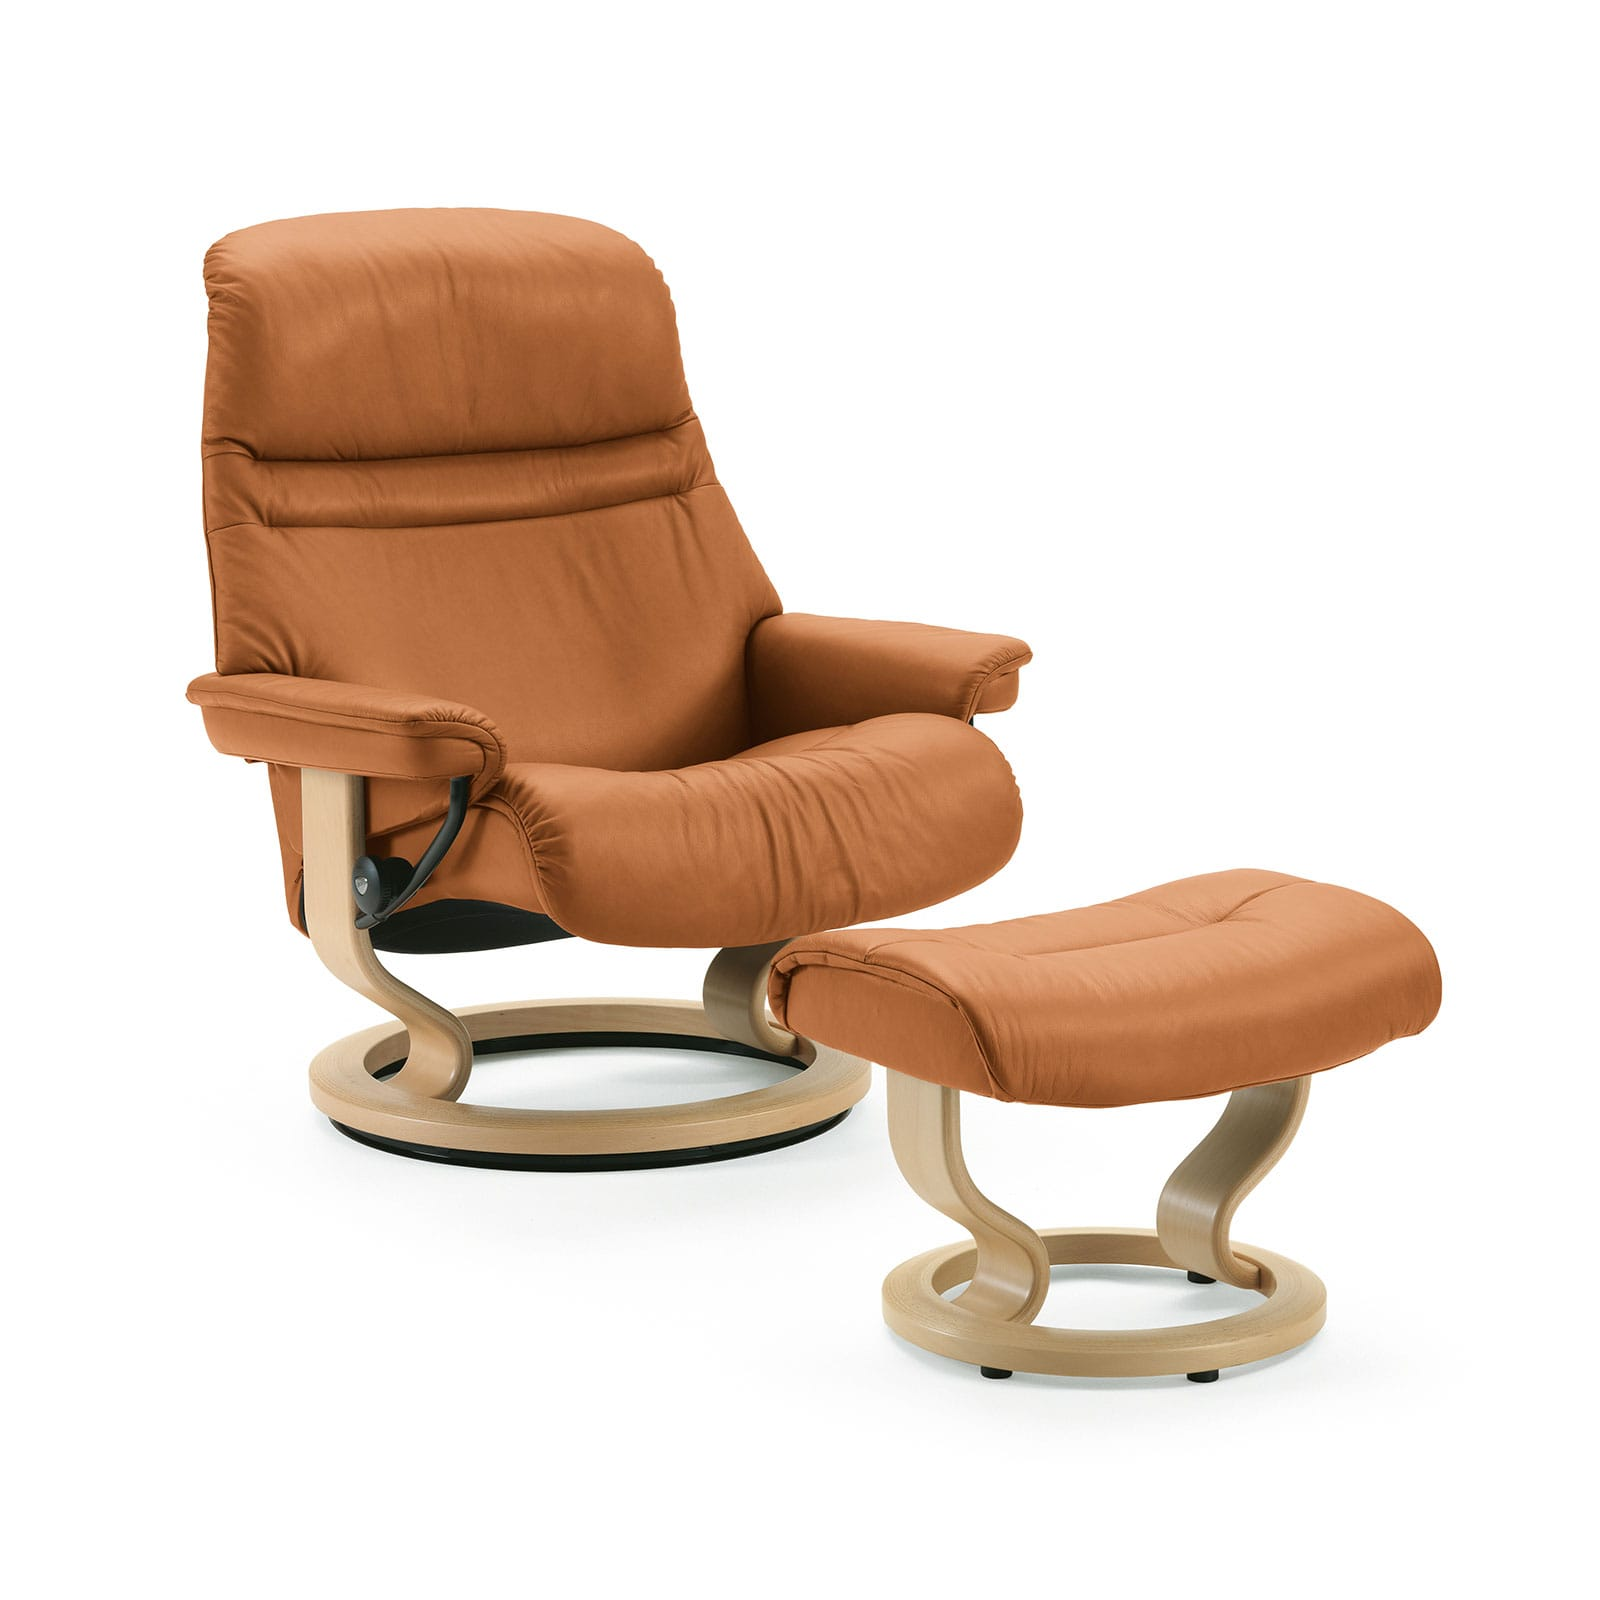 ekornes sessel trendy stressless sessel preise clearance center with ekornes sessel expandless. Black Bedroom Furniture Sets. Home Design Ideas